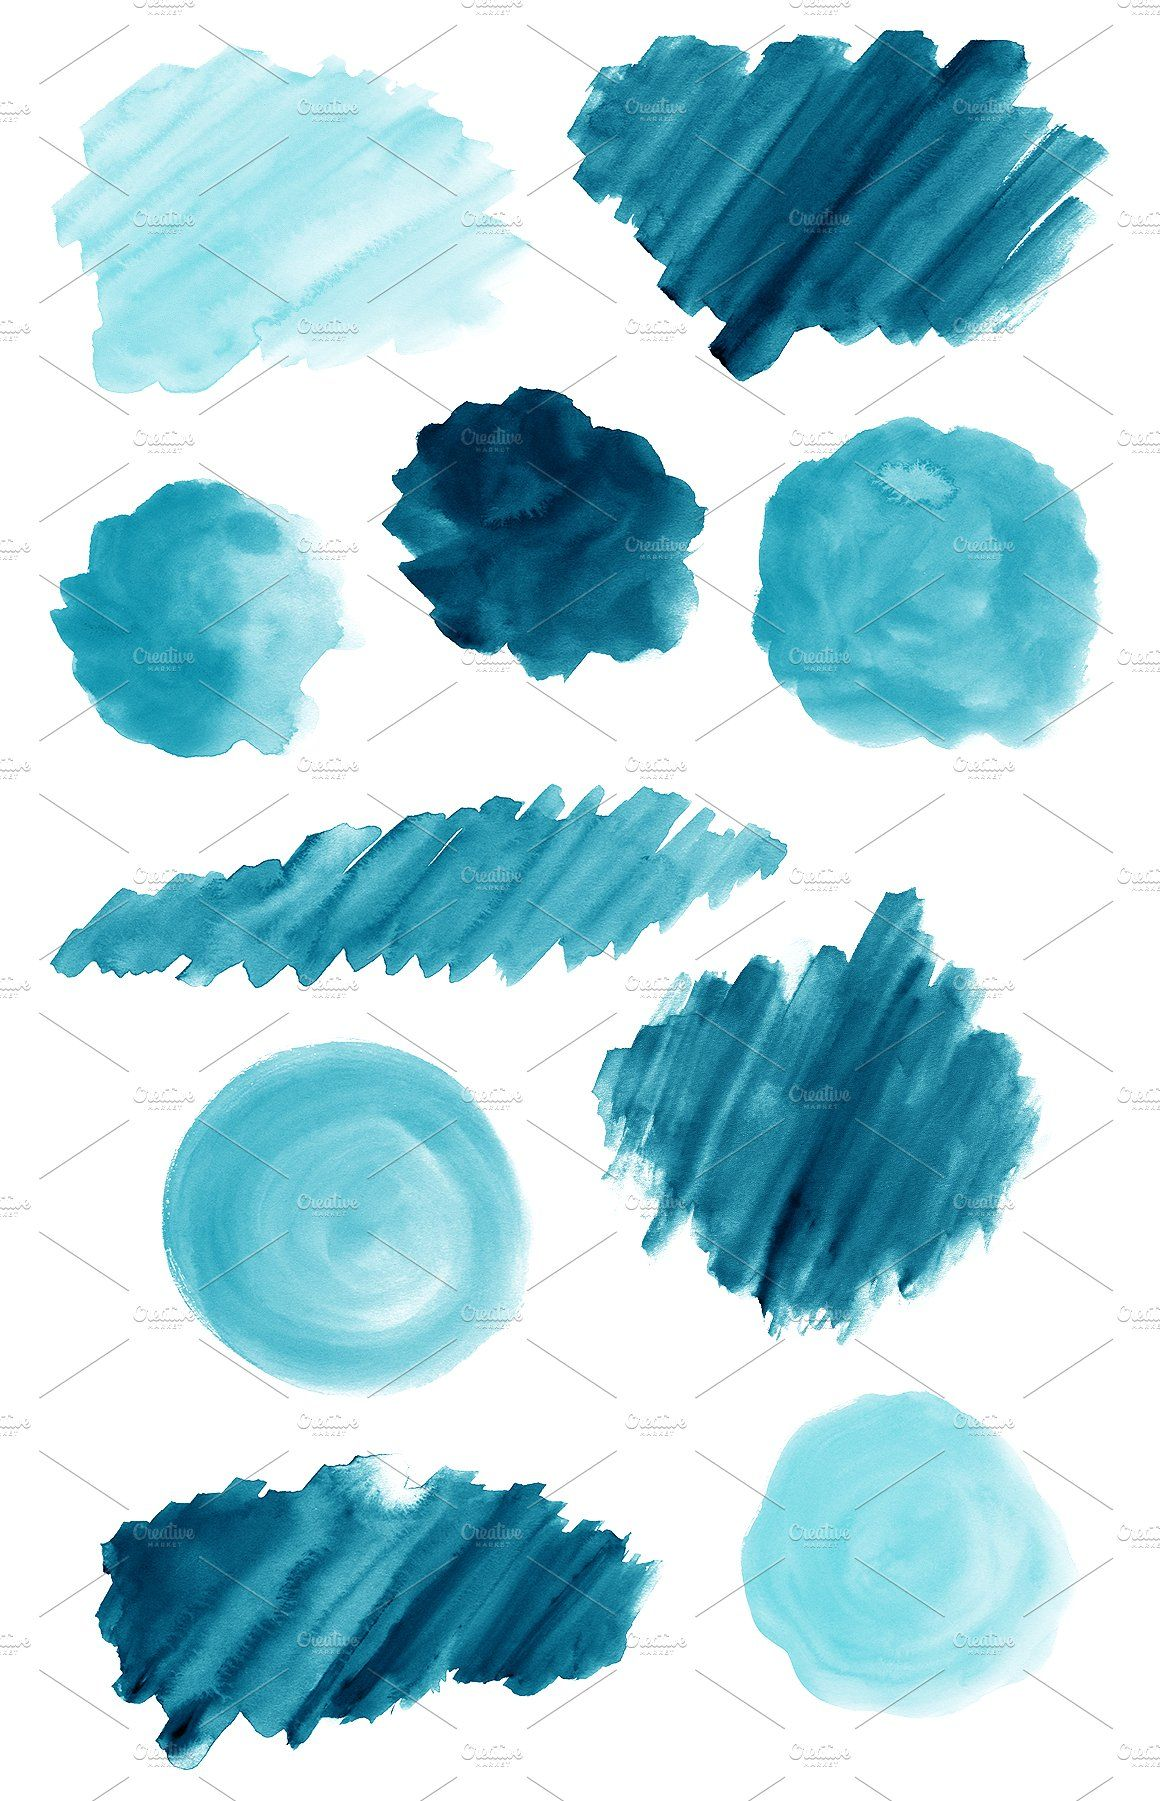 50 Blue Watercolor Shapes Watercolour Texture Background